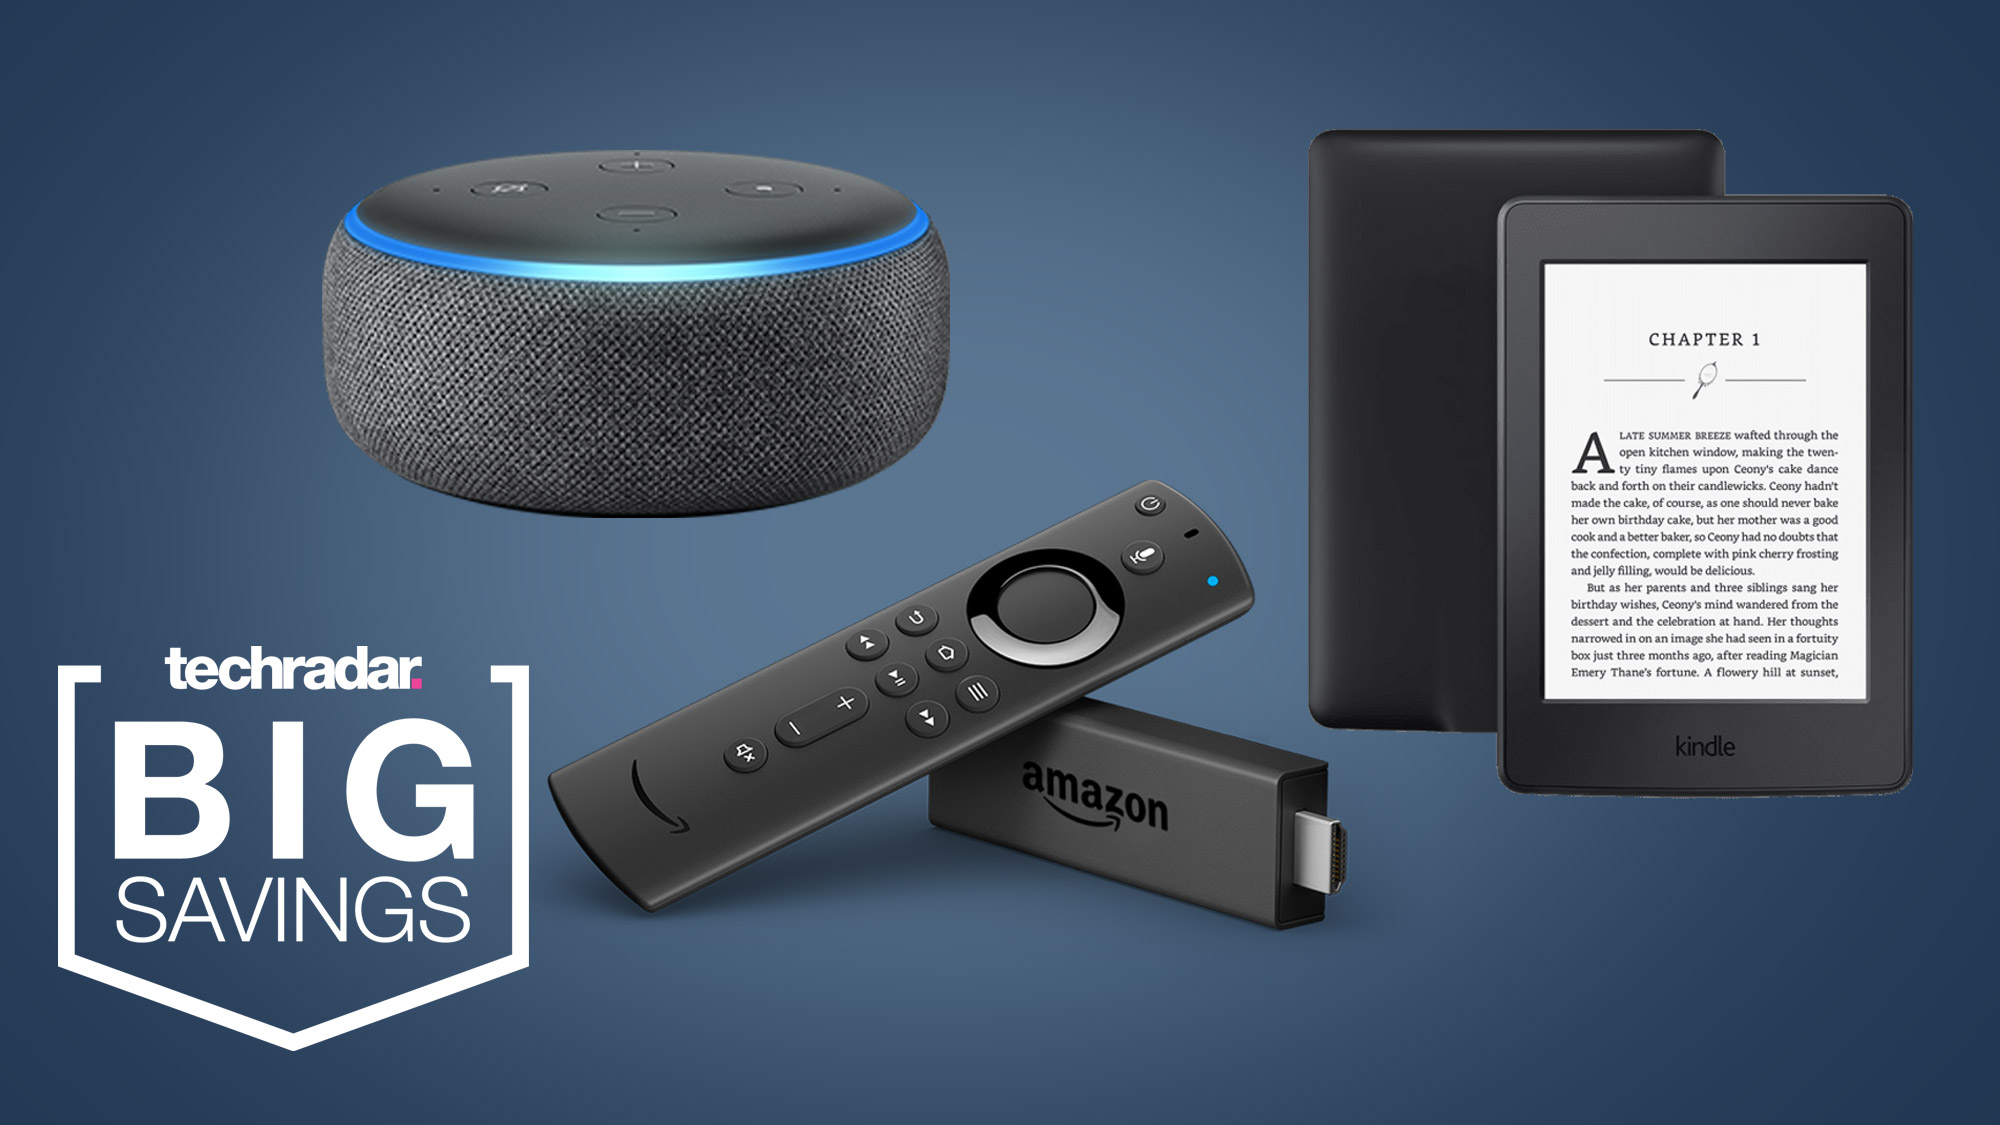 Forget Prime Day, Amazon's Summer Sale is here with deals on the Echo, Kindle, Fire TV Stick, more thumbnail